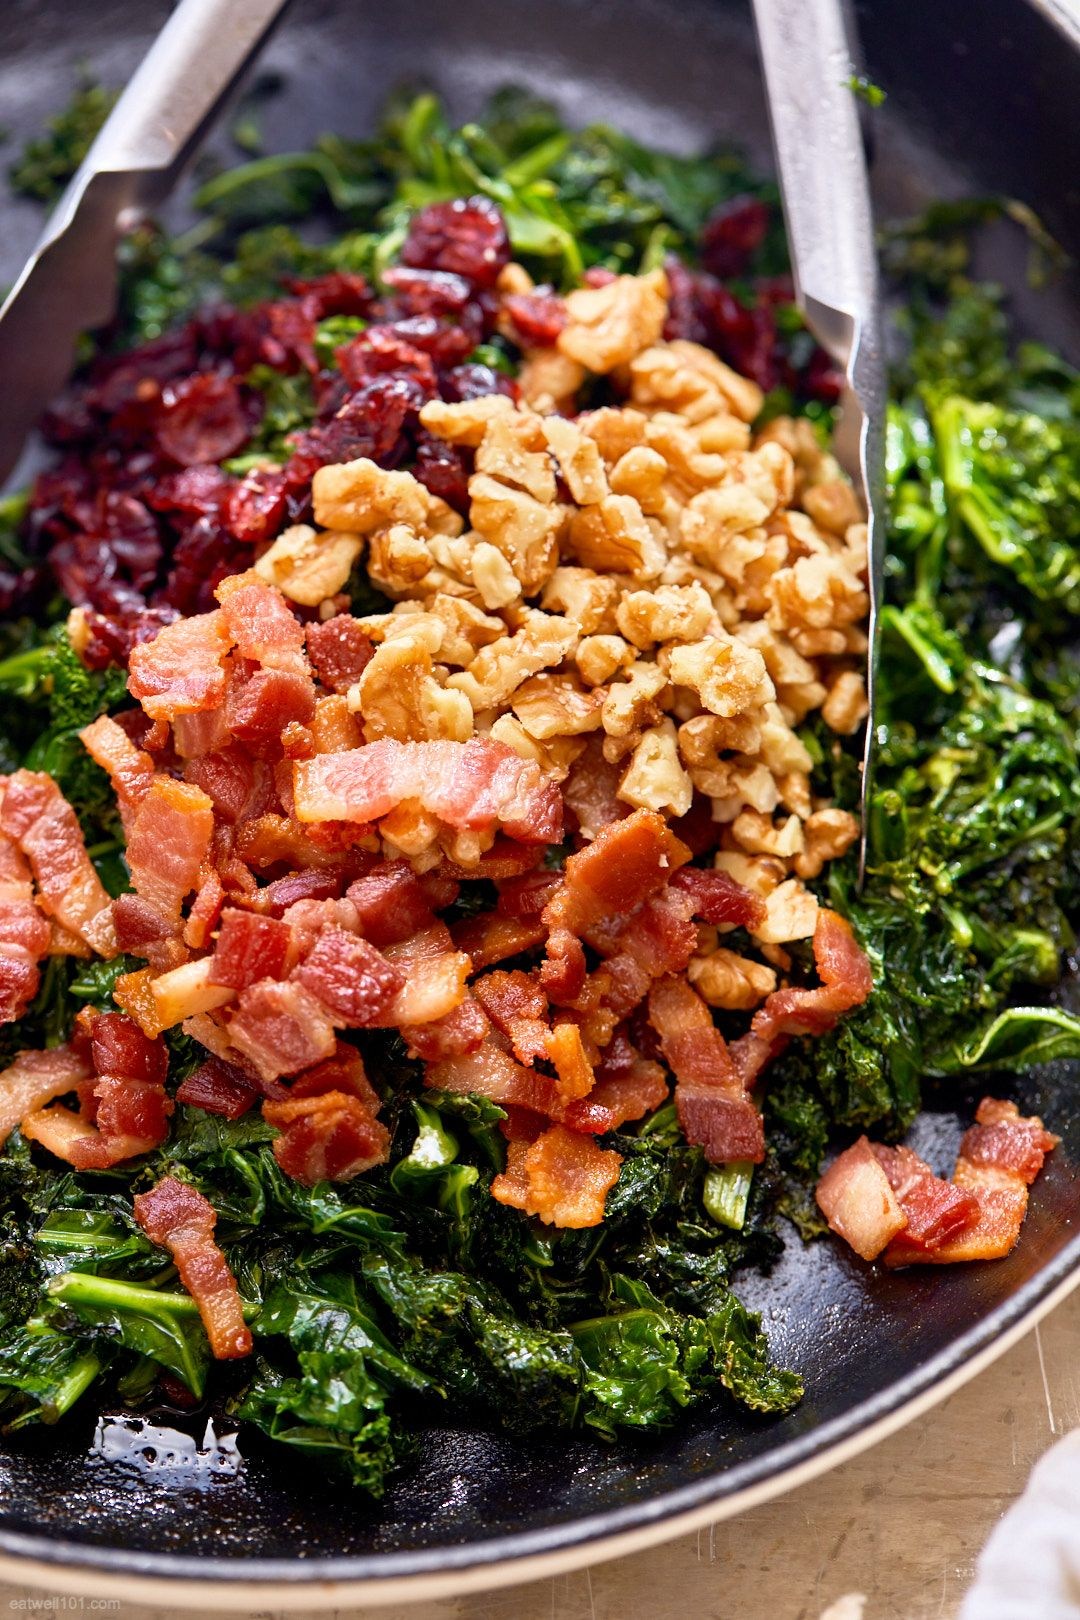 Healthy Sauteed Kale Salad With Bacon Walnuts And Cranberries In 2020 Beef Pasta Recipes Lamb Tagine Recipe Kale Recipes